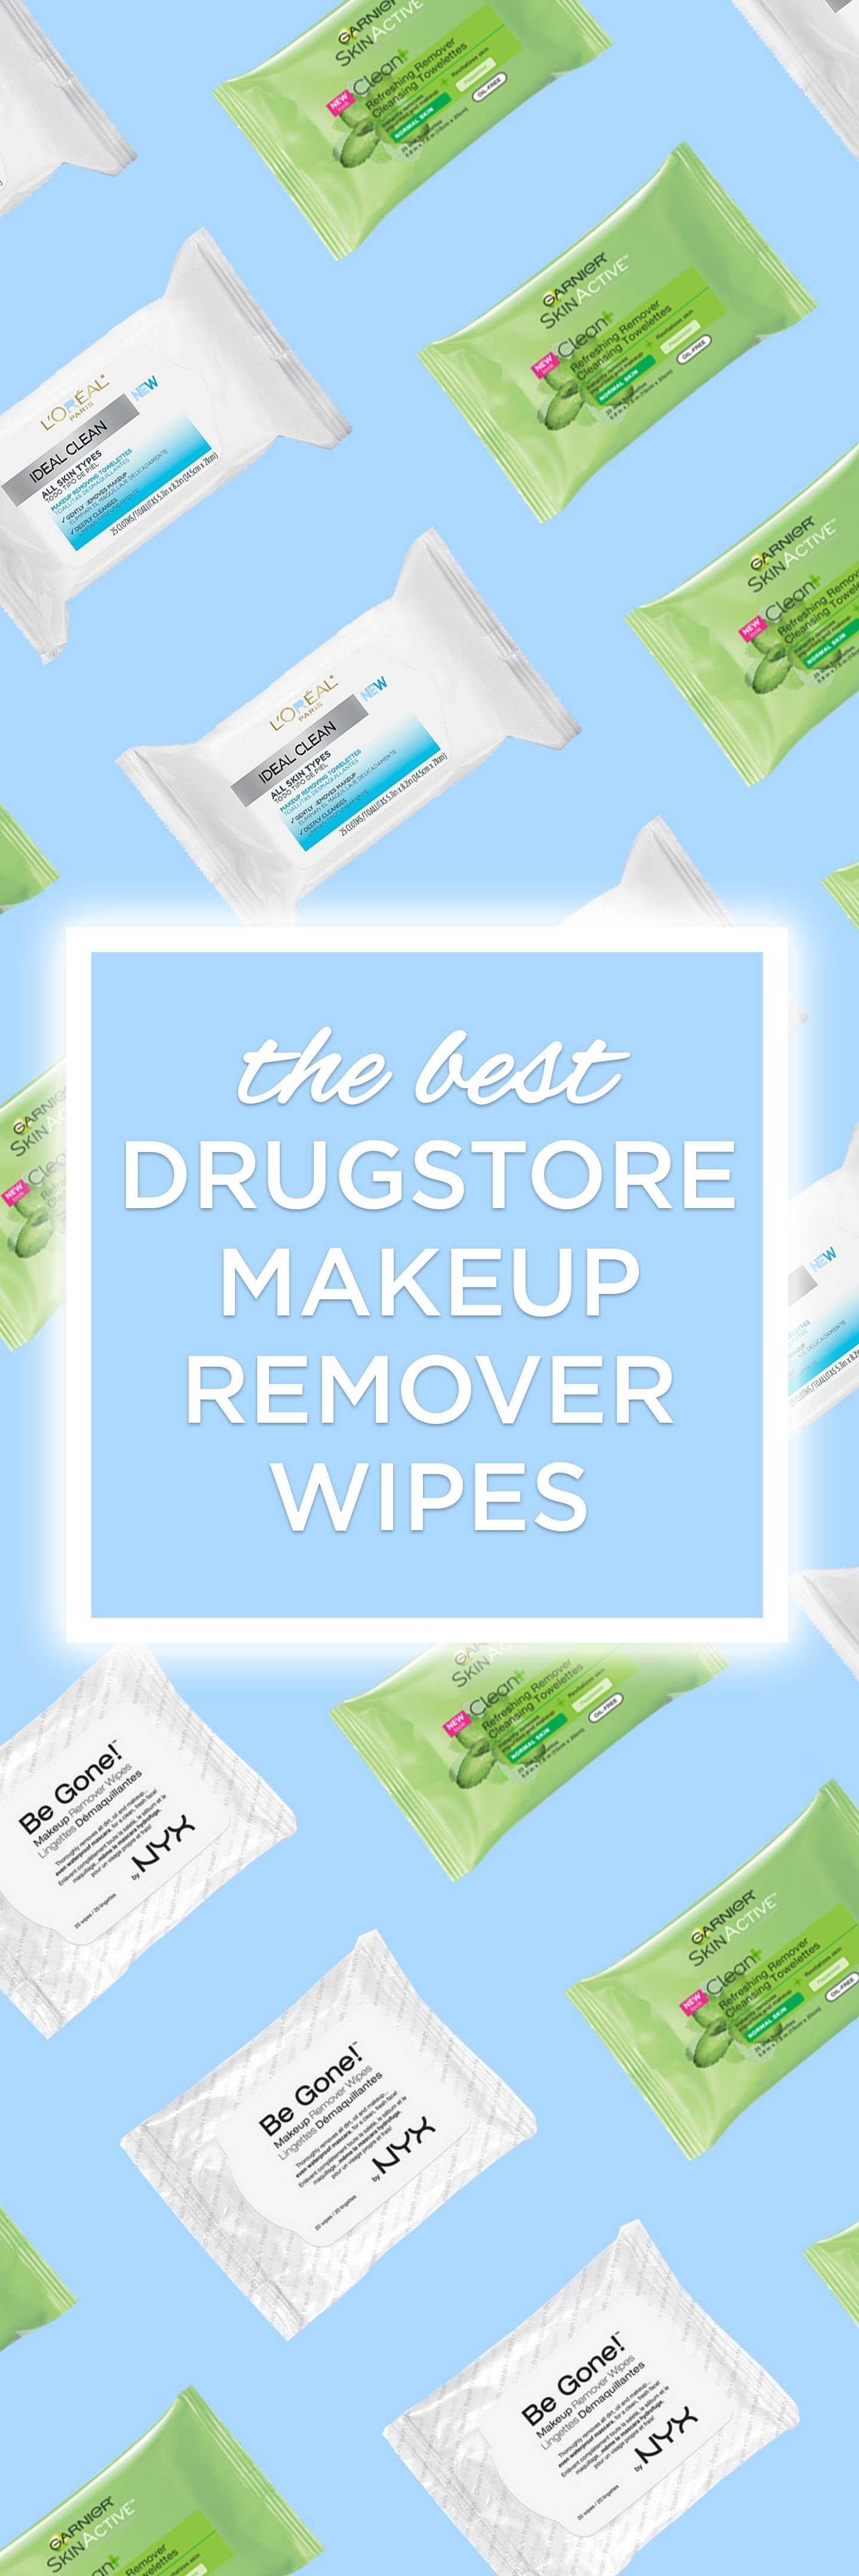 Best Drugstore Waterproof Makeup Wipes Makeup remover